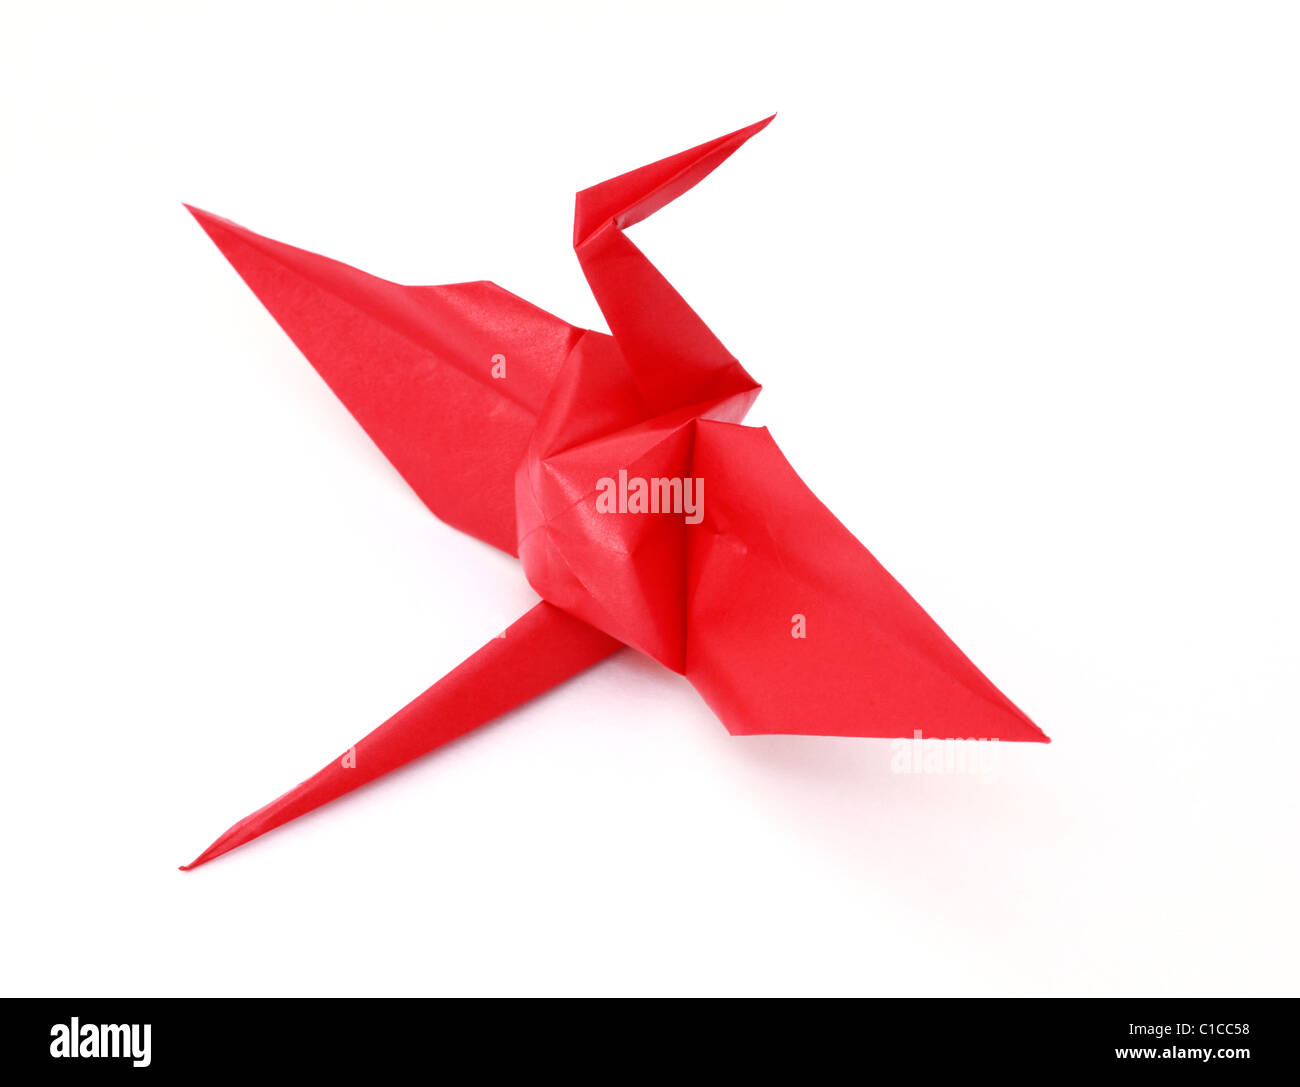 Close-up of a red origami bird sitting down. - Stock Image